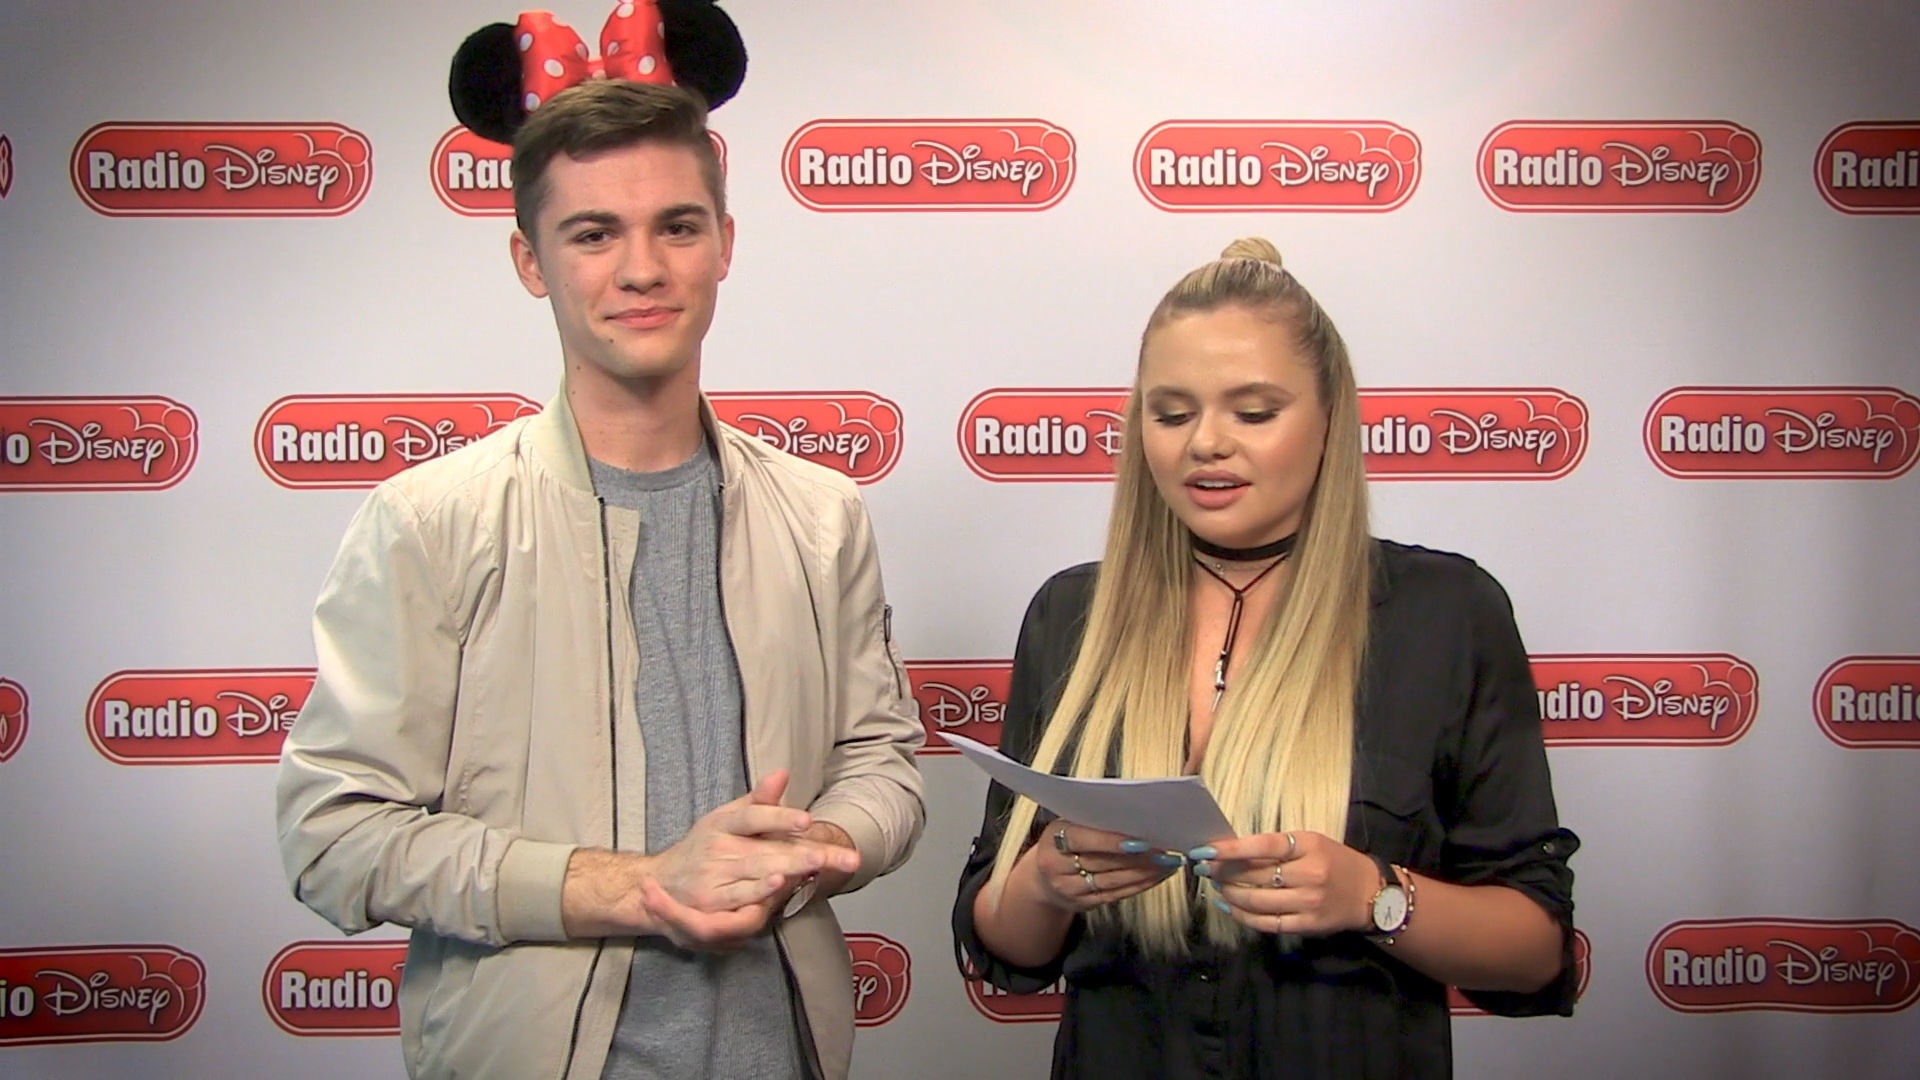 Jordan Doww Would you Rather: Disneyland Edition | Radio Disney